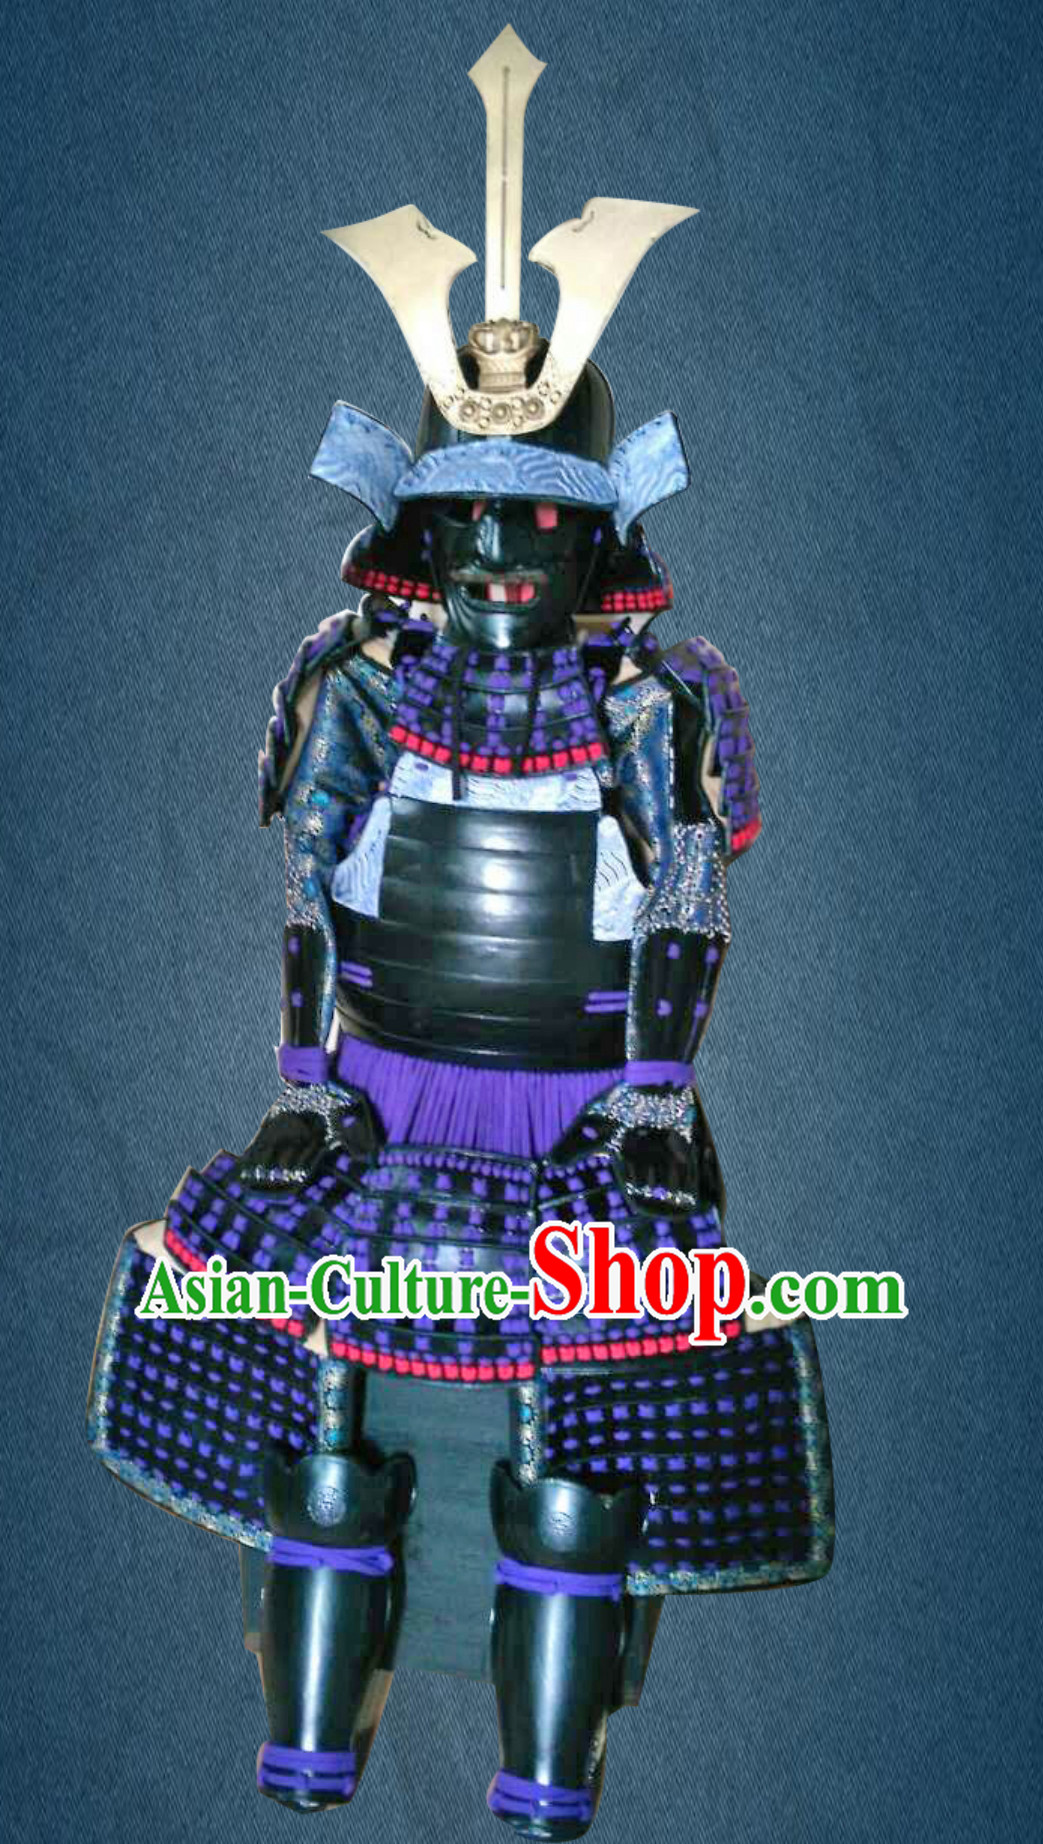 Authentic Japanese Samurai Armor Japanese Samurai Body Armor Custom Japanese Samurai Armor Full Complete Set